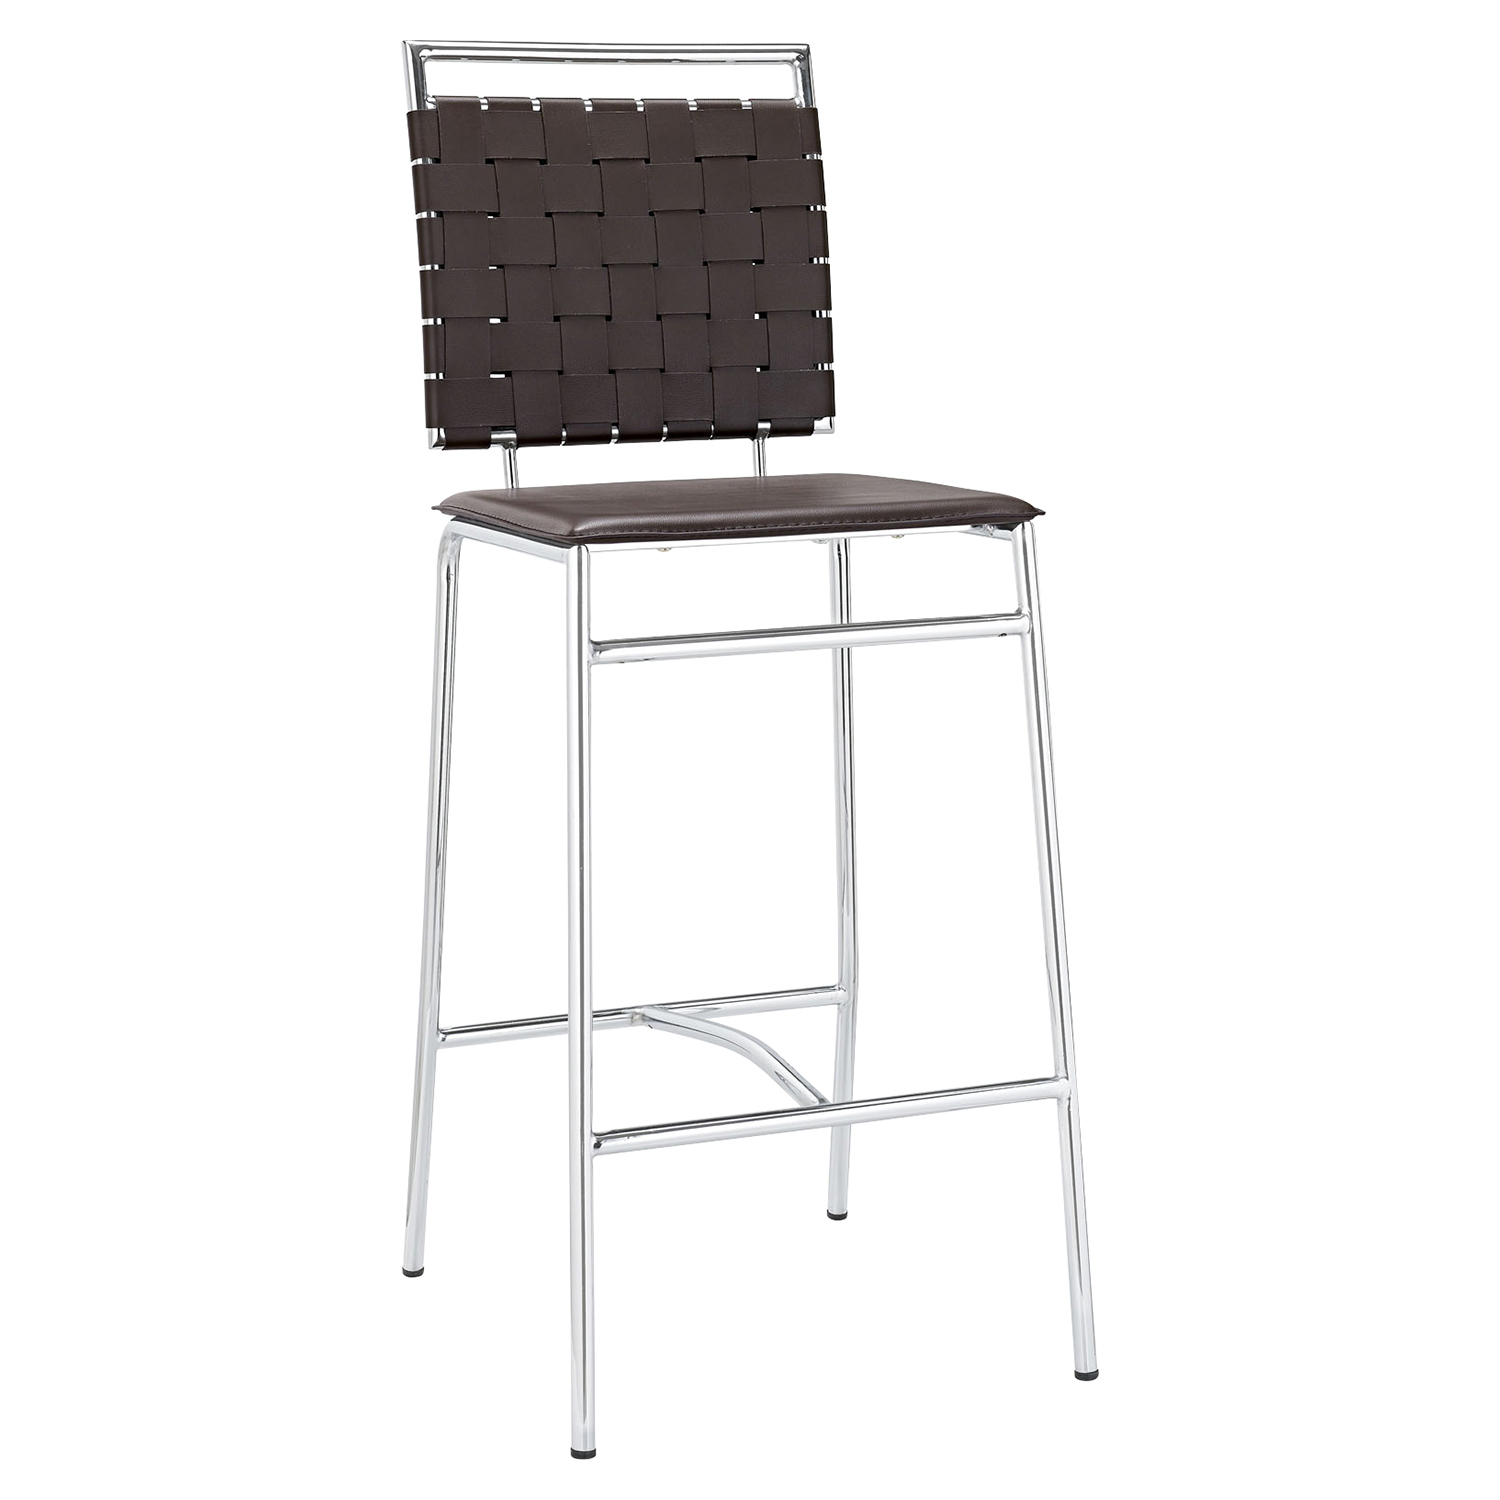 Fuse Leather Look Bar Stool - Brown - EEI-1107-BRN